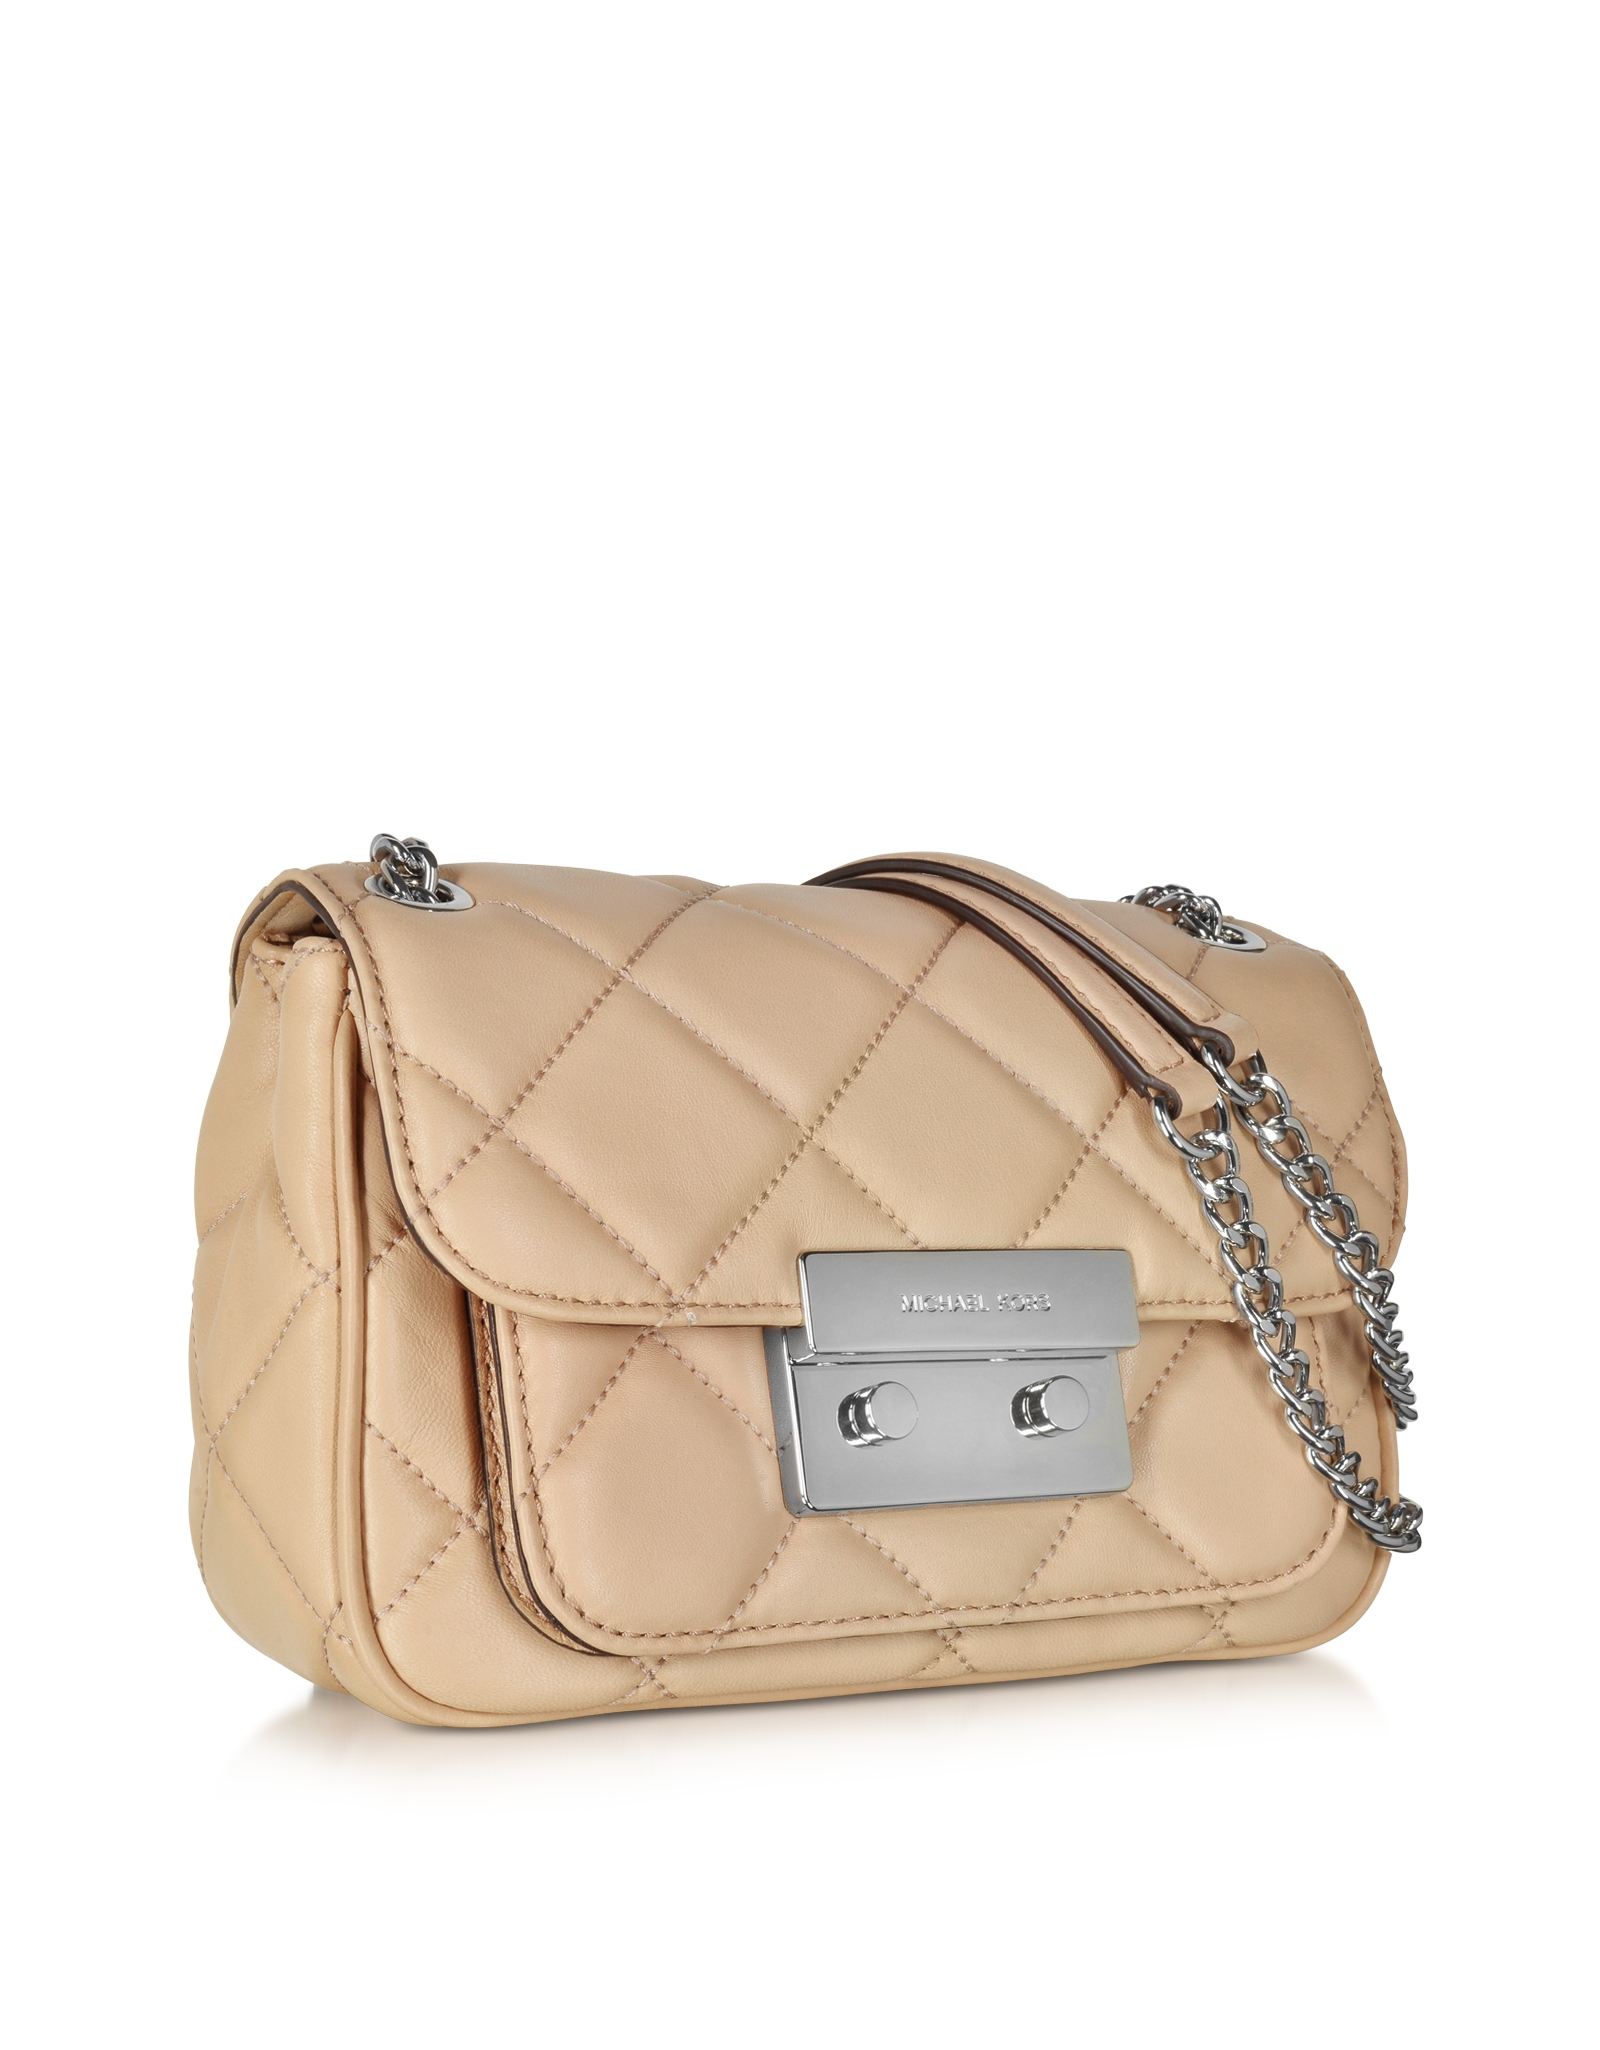 Michael kors Small Blush Quilted Leather Shoulder Bag W/flap Top ...